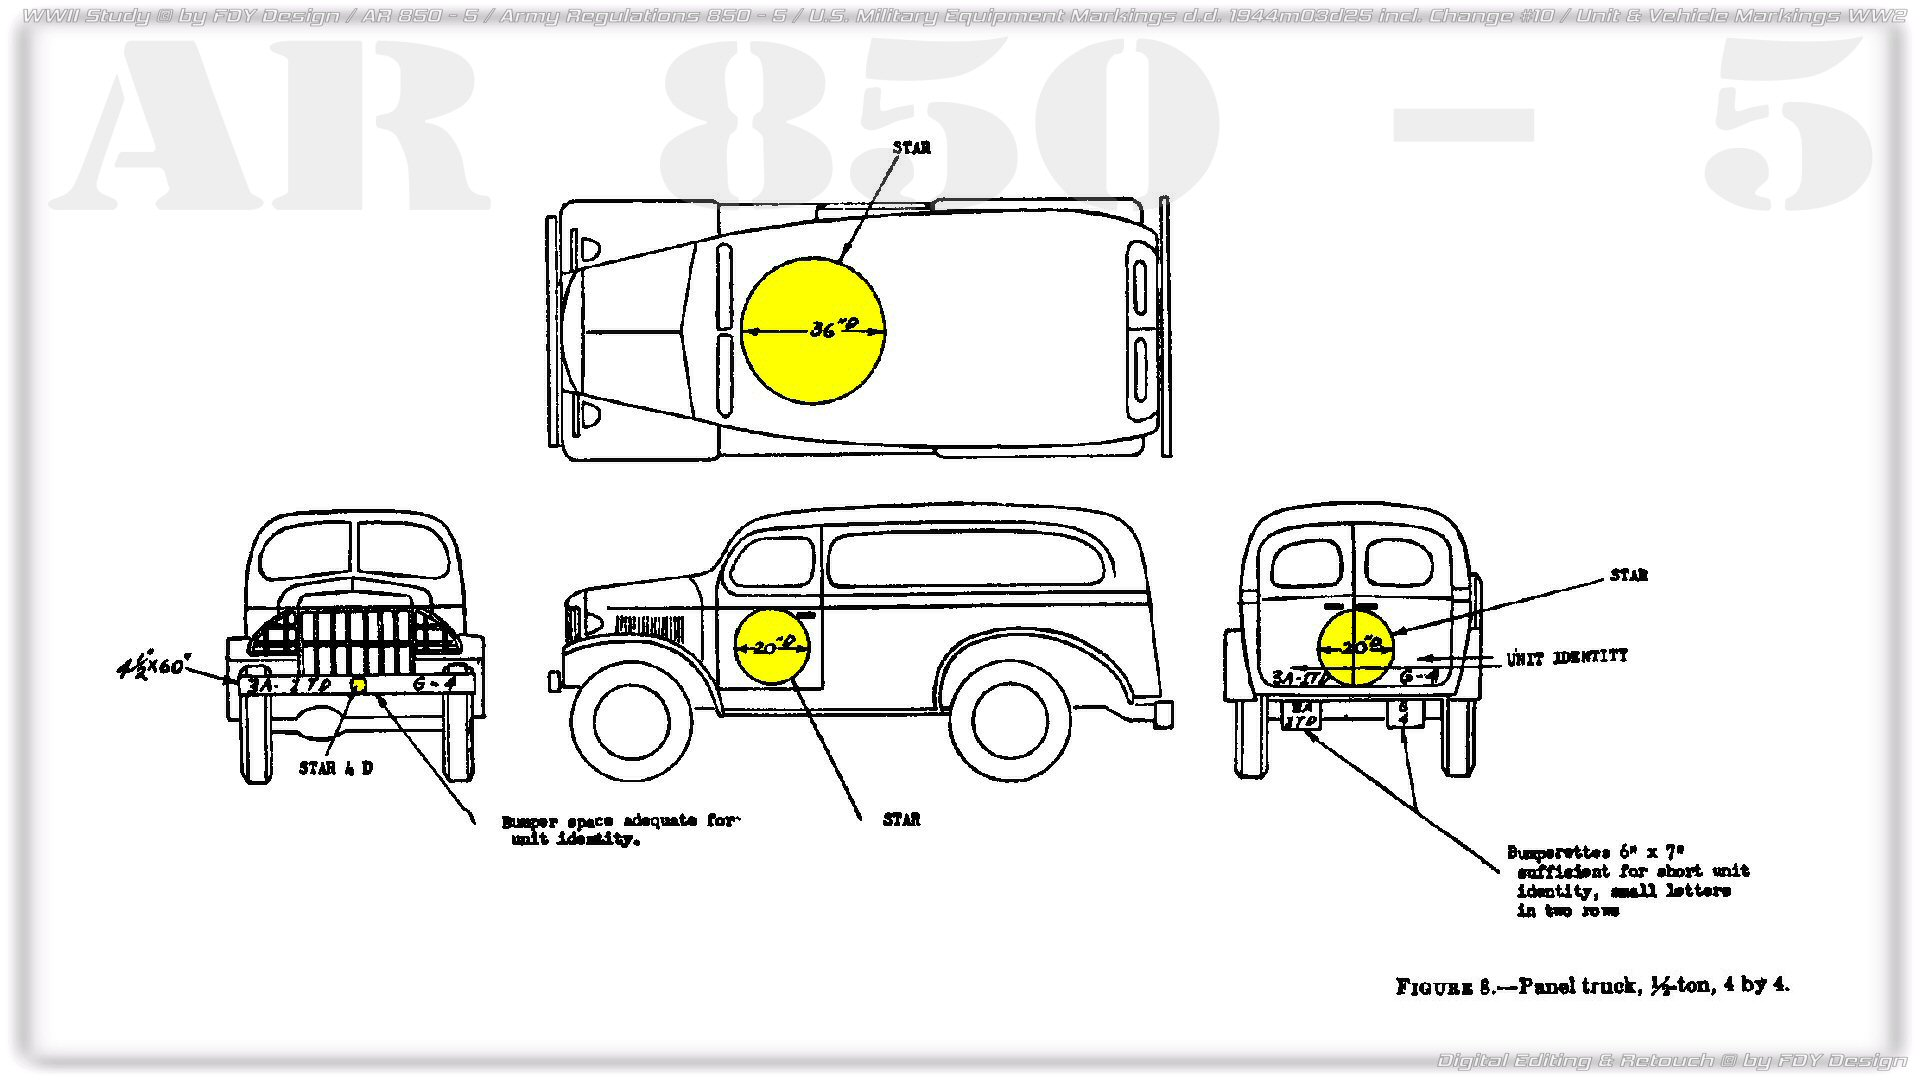 wiring diagram as well as chevy truck wiring diagram moreover 1981